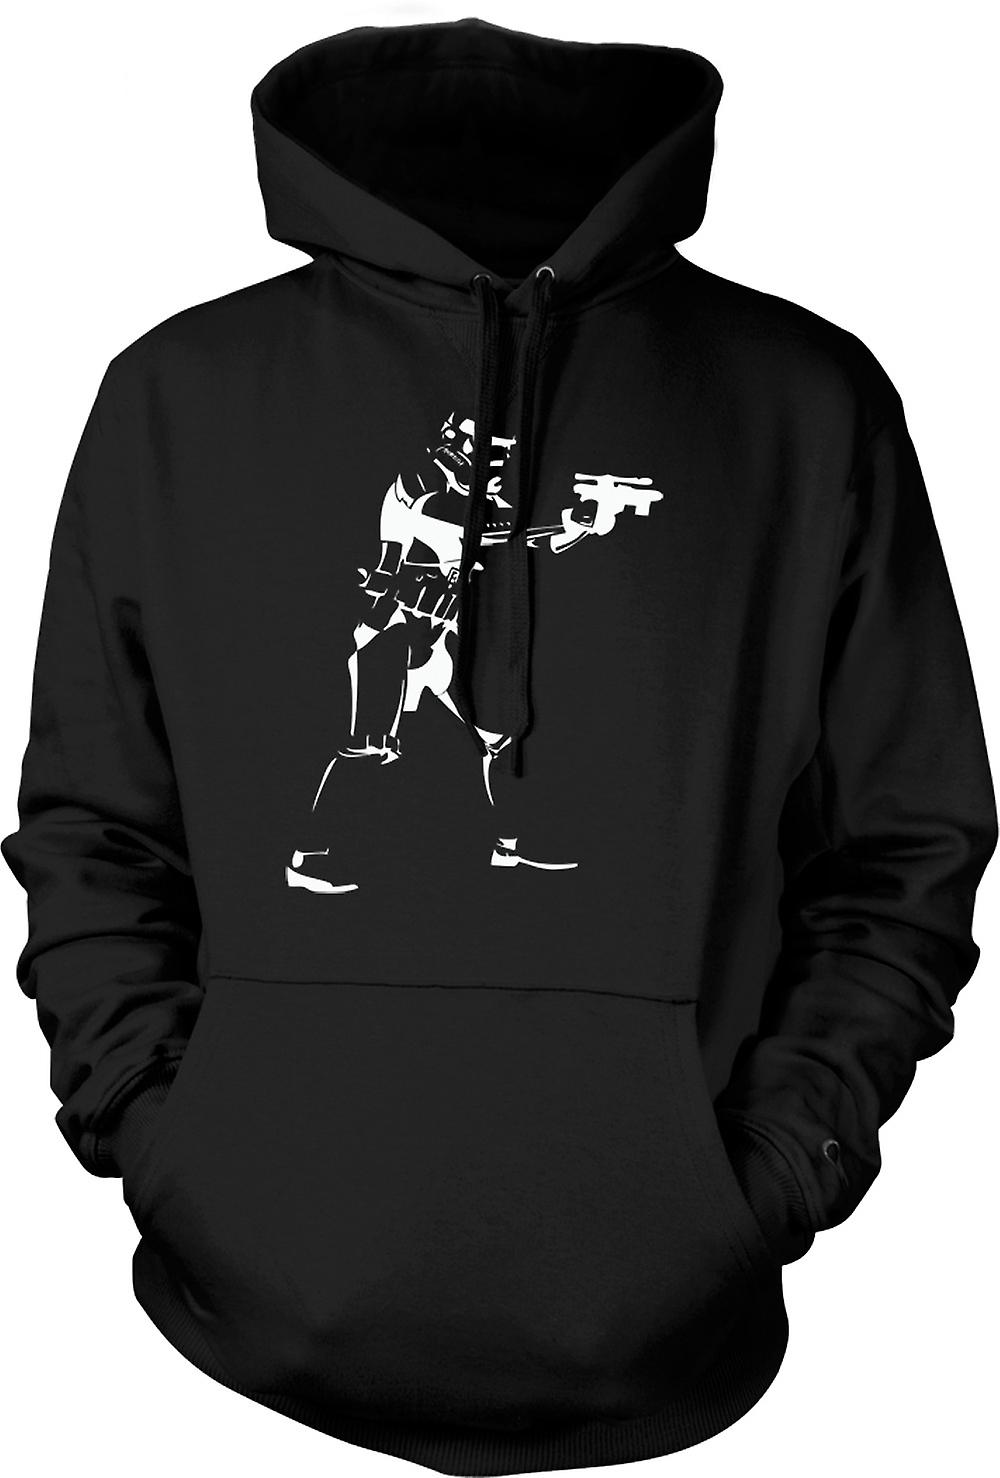 Kids Hoodie - Star Wars - Storm Trooper - Pop Art